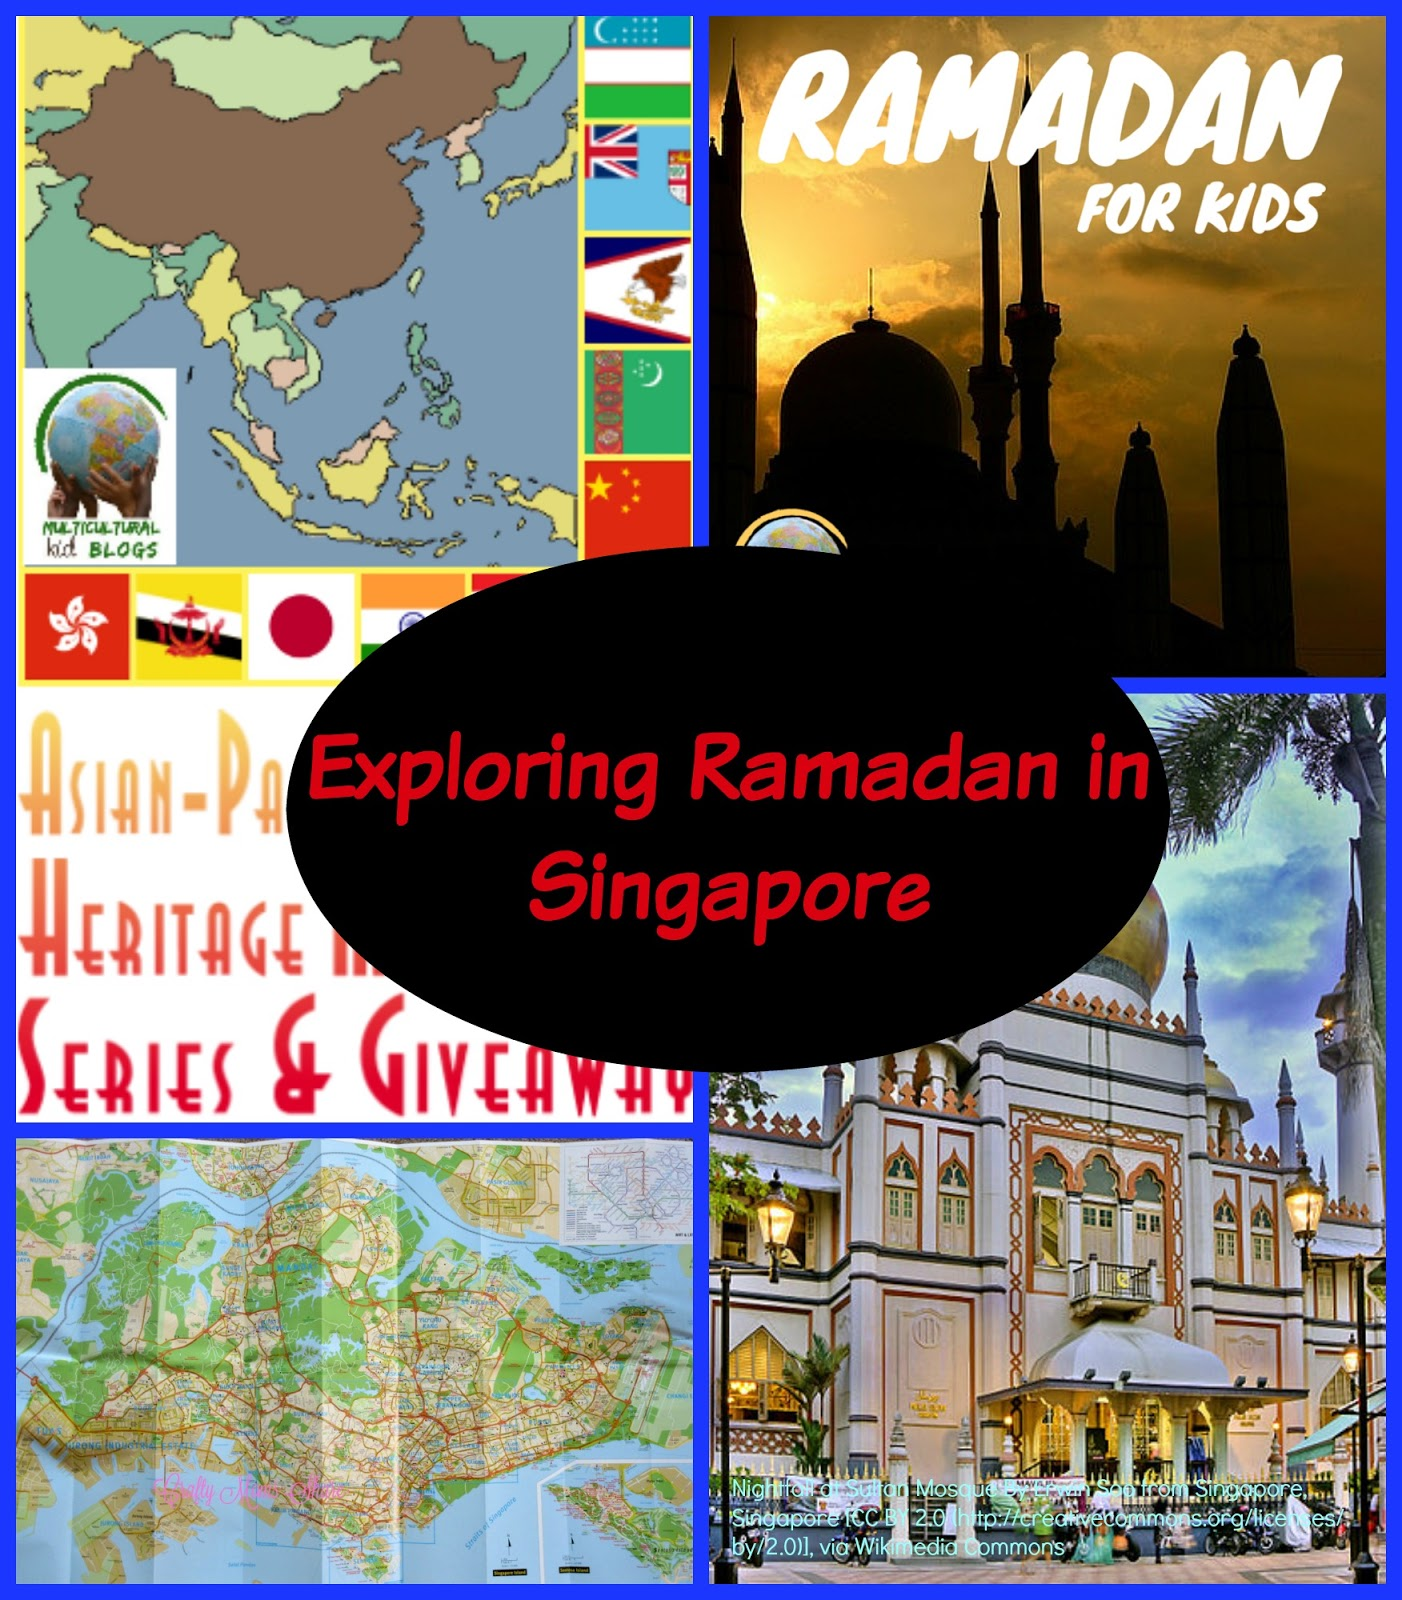 Ramadan In Singapore For Kids Global Learning Asian Pacific American Heritage Blogs Series Giveaway